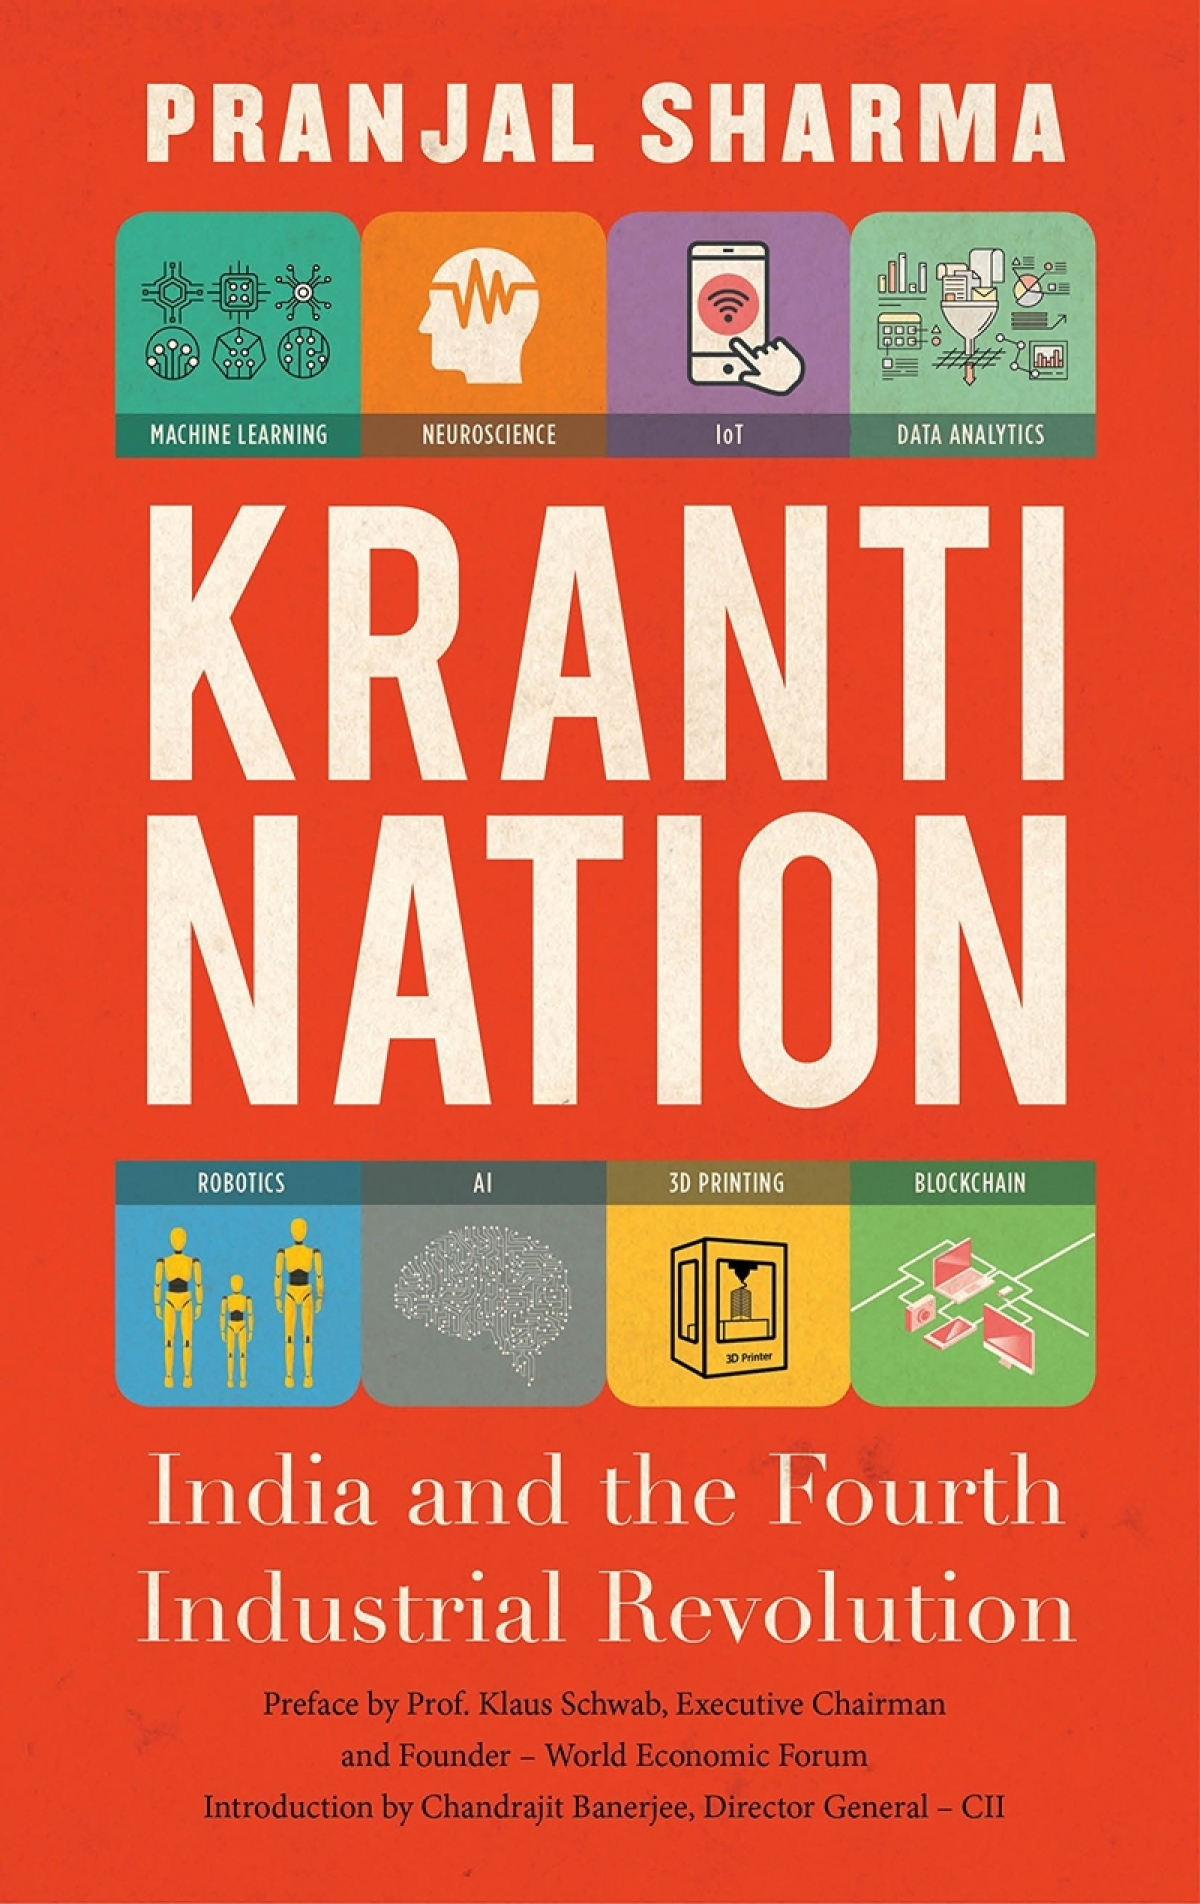 Kranti Nation: India and the Fourth Industrial Revolution by Pranjal Sharma-Review